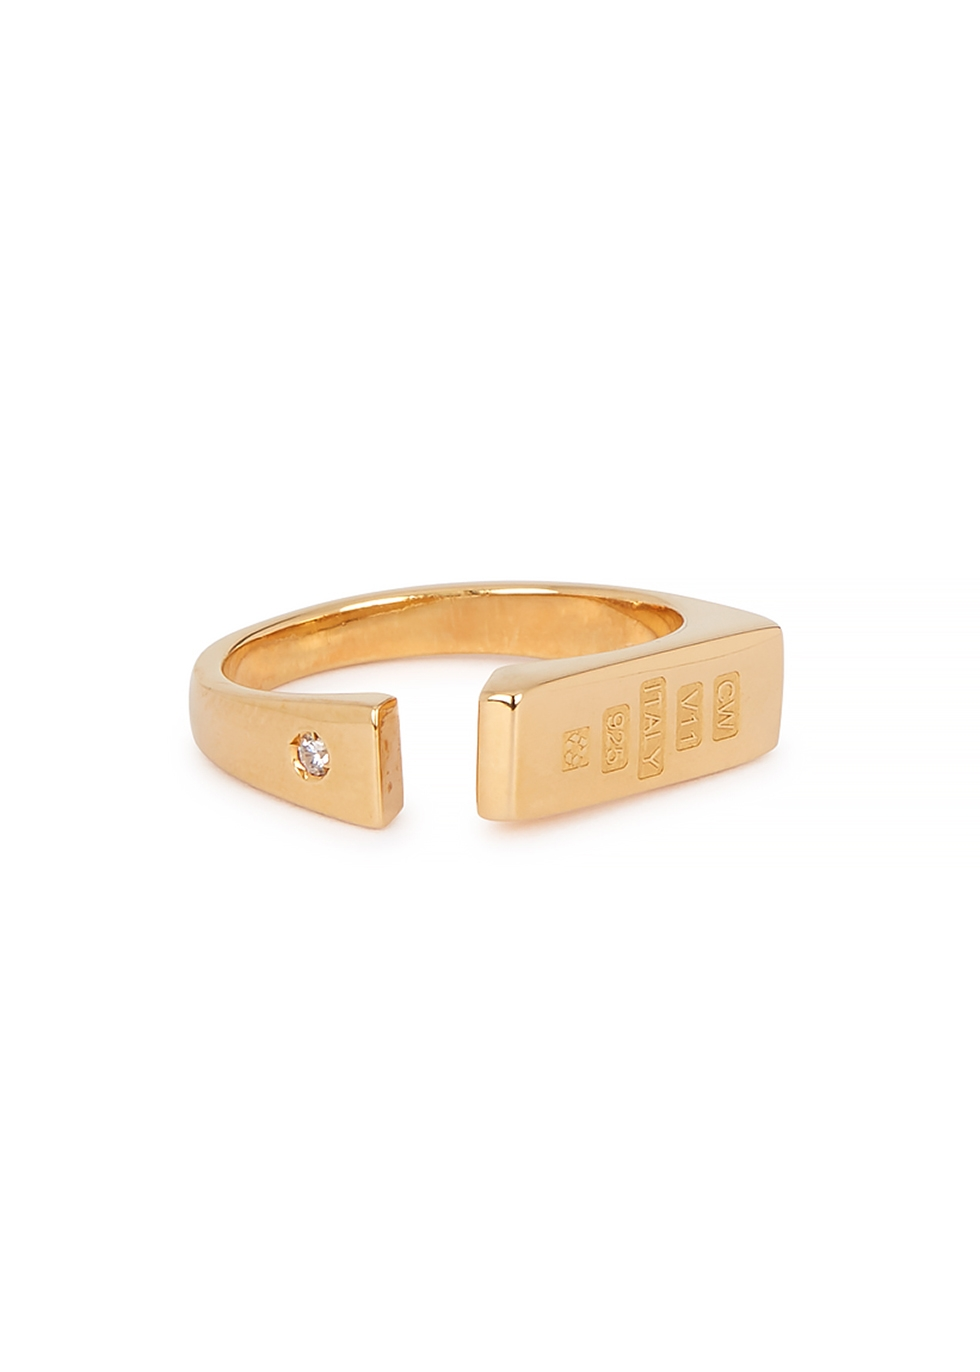 Distorted 24kt gold-plated signet ring